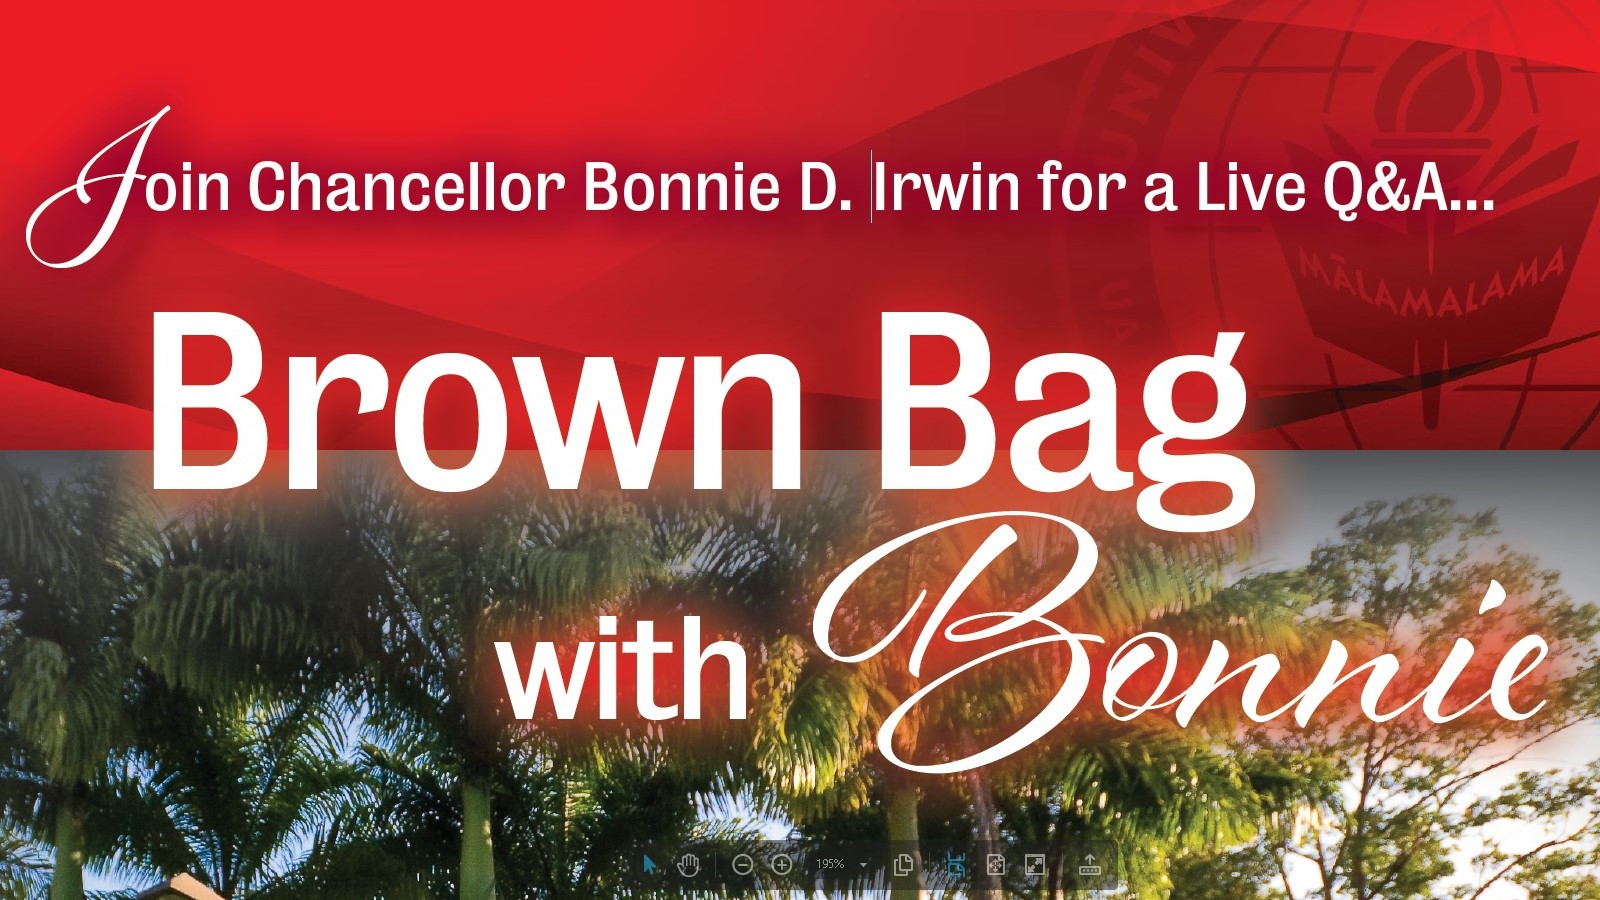 Background of trees and red school color, words: Join Chancellor Bonnie D. Irwin for a live Q&A... Brown Bag with Bonnie